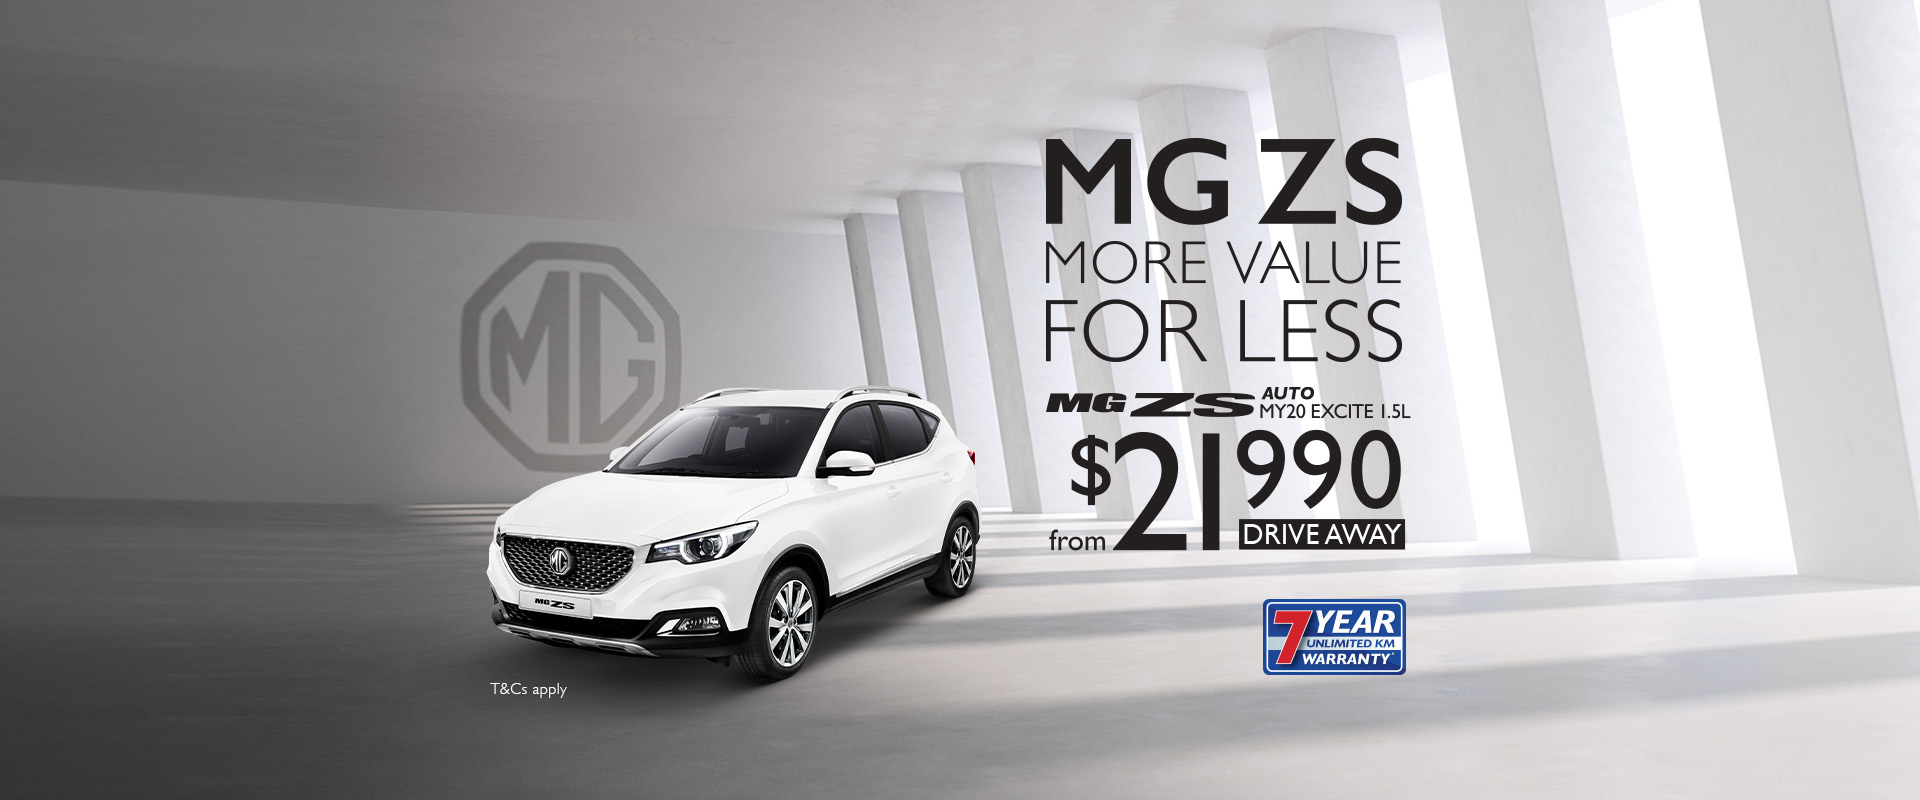 MG ZS more value for less